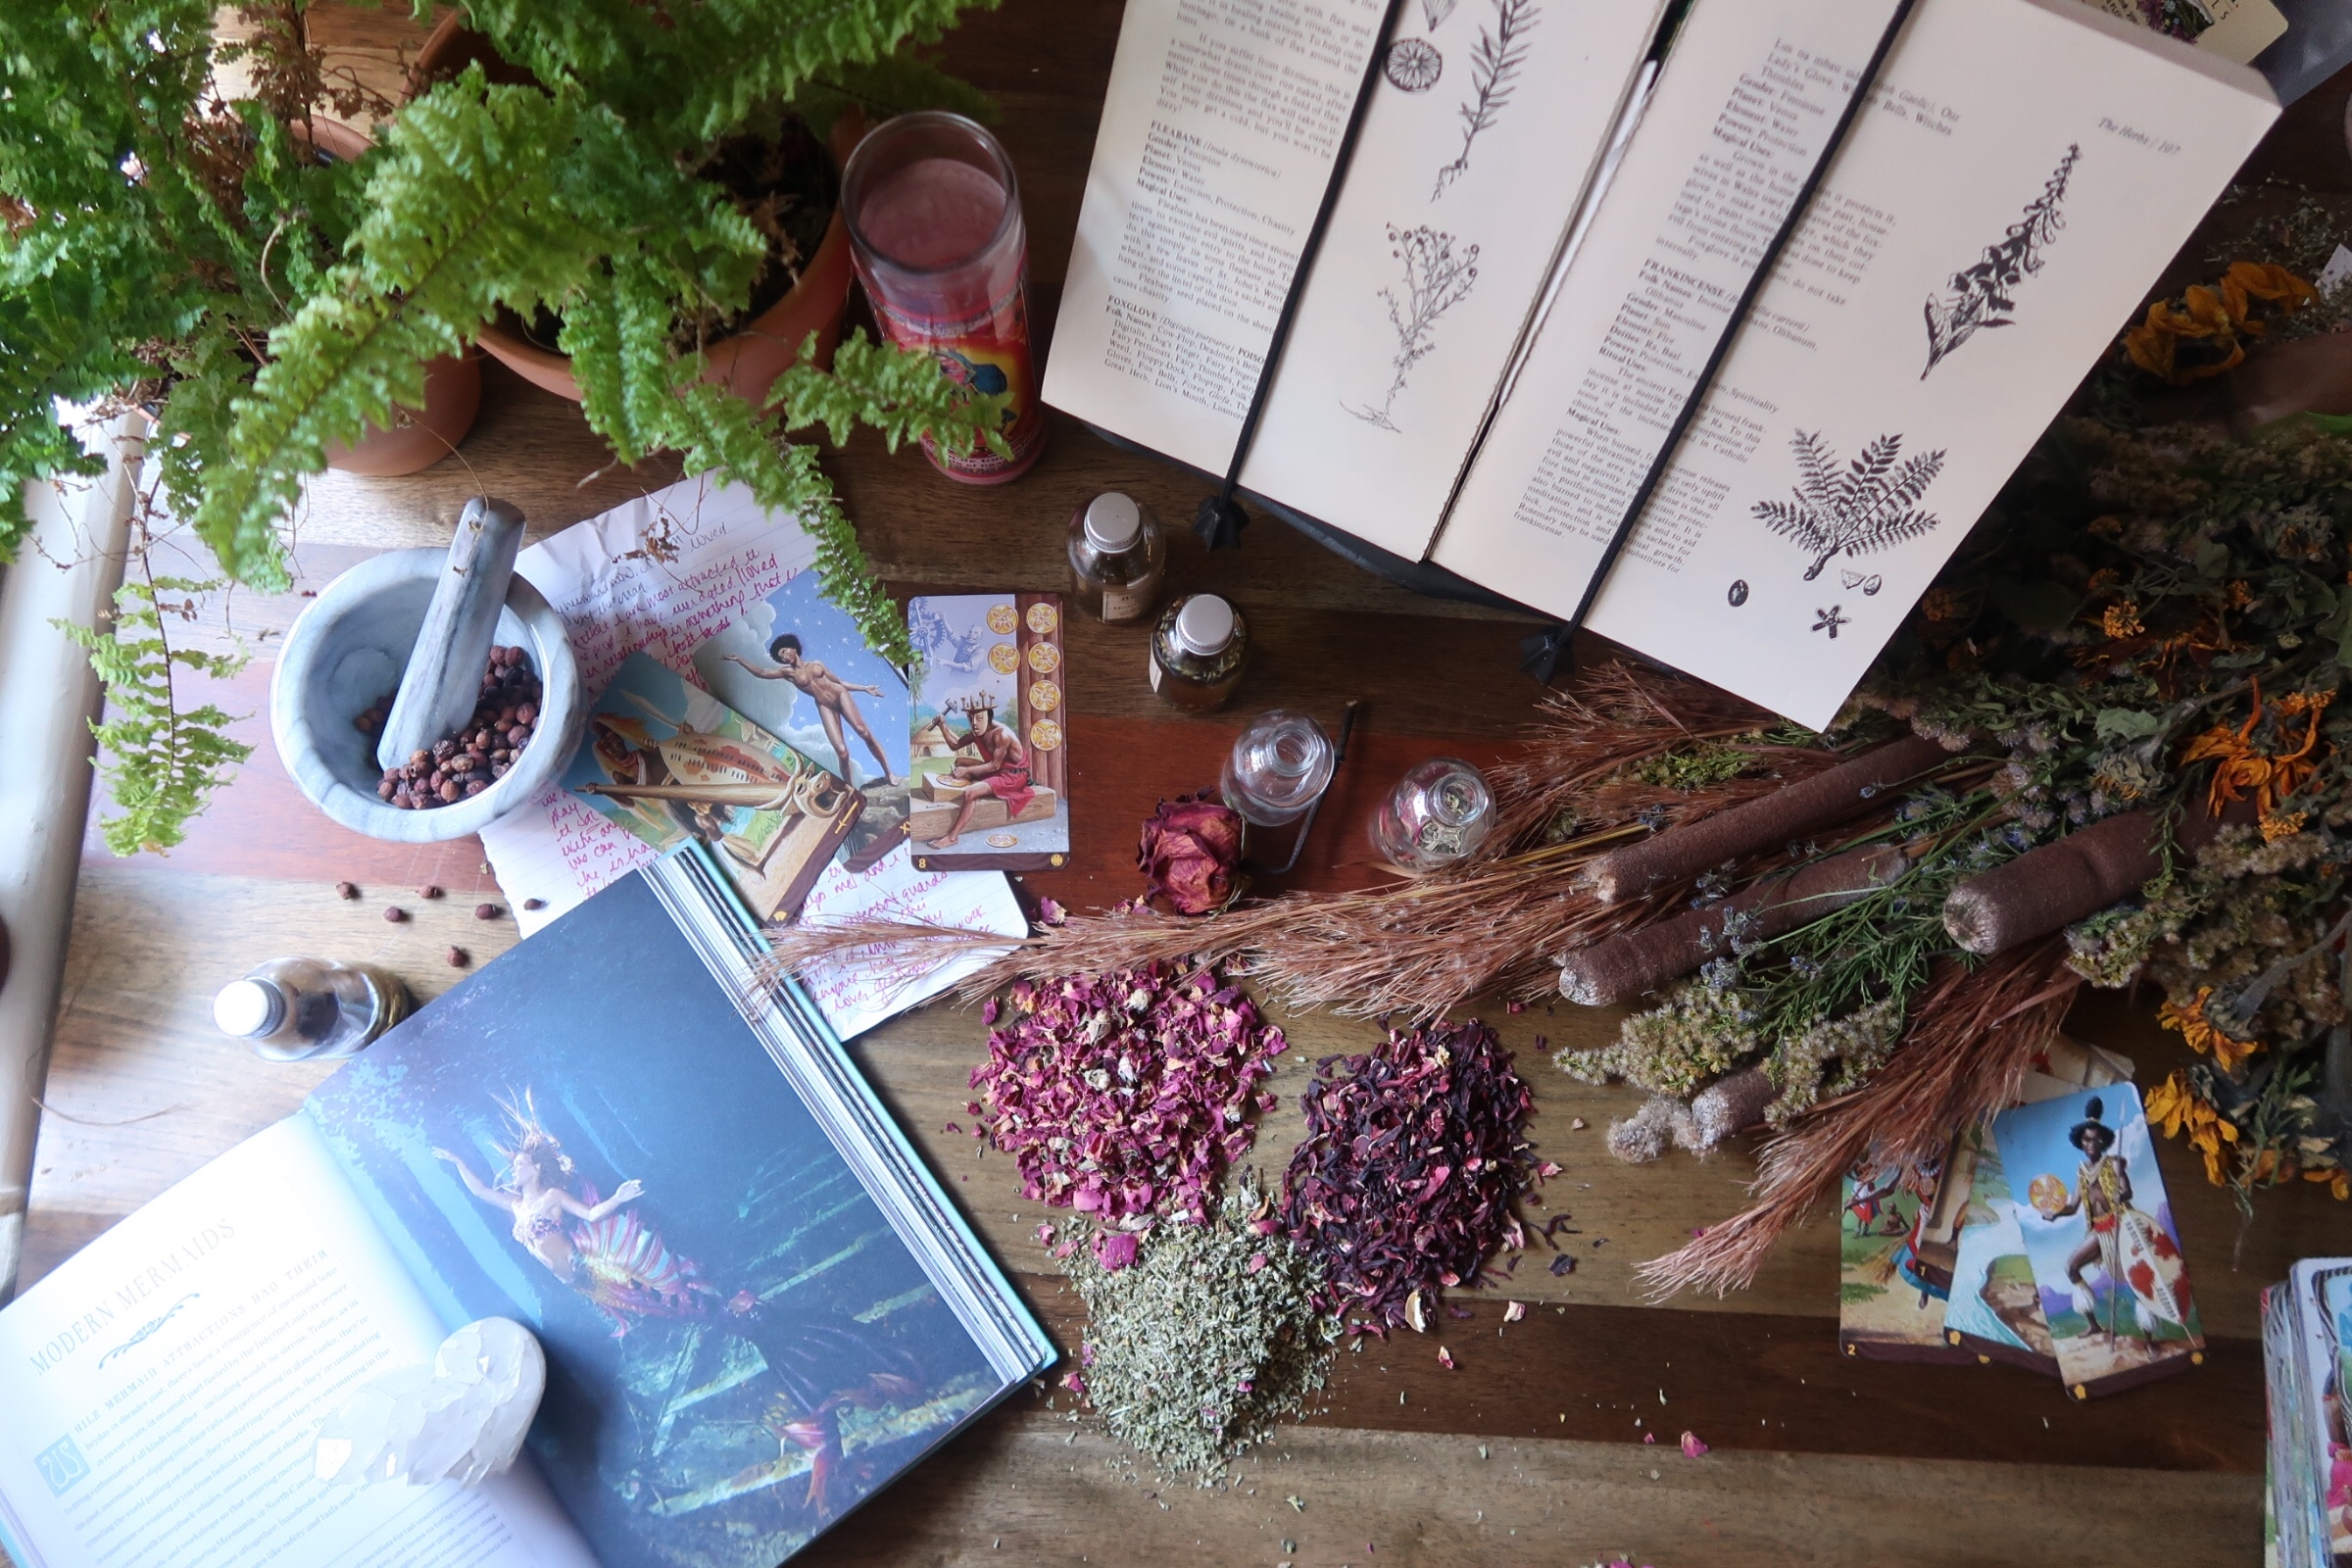 Learn the Tarot with Jess of BehatiLife - An exclusive private group for studying the tarot with Jess as our guide!